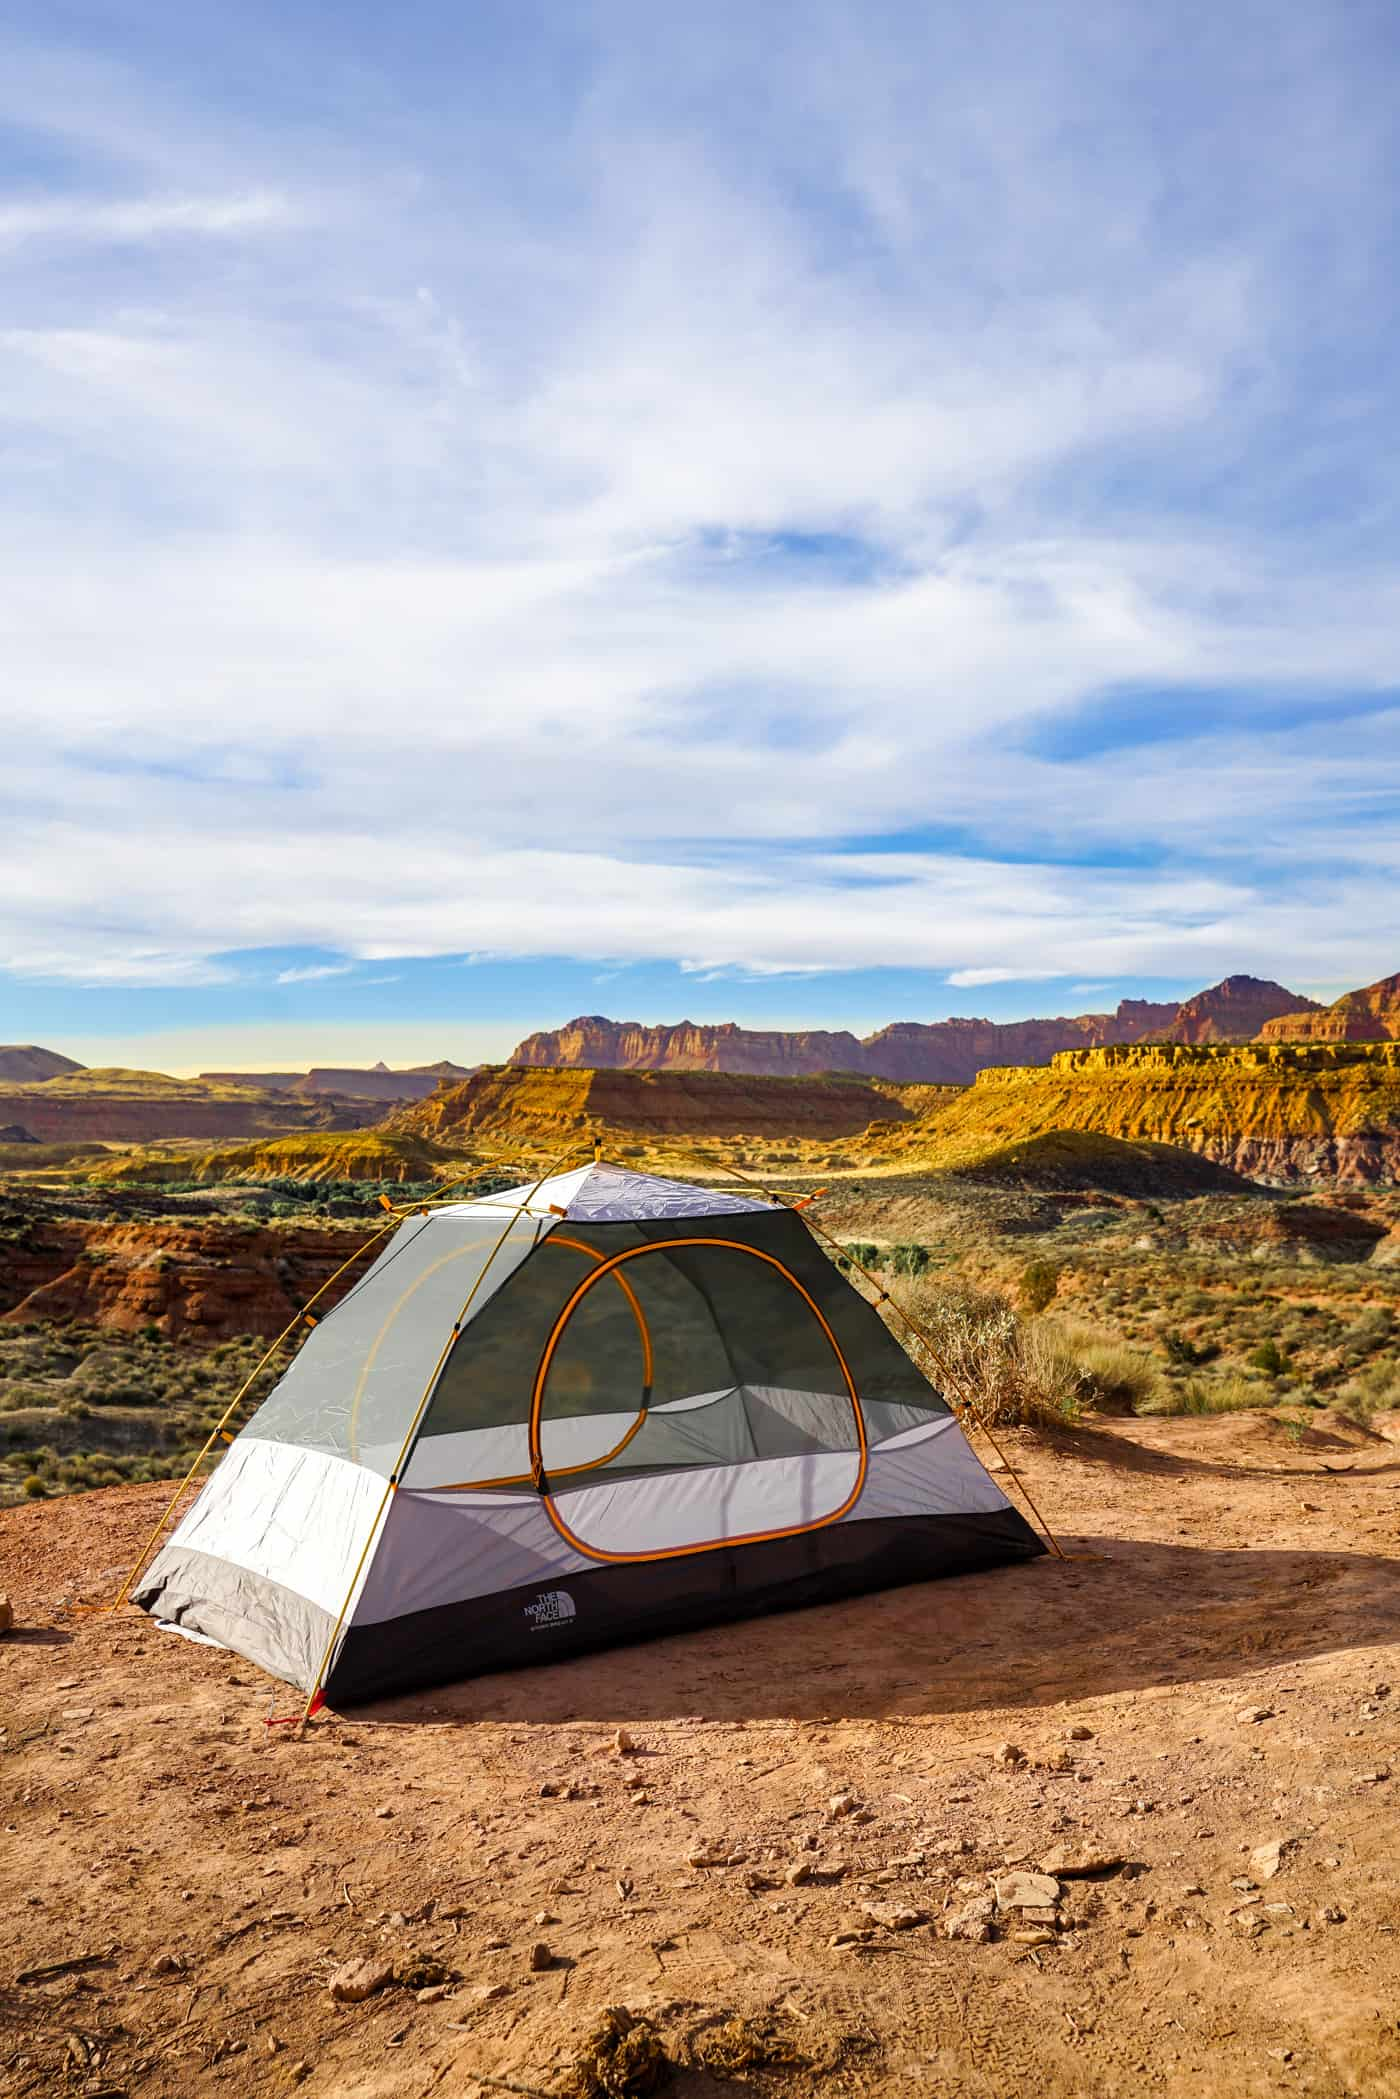 A North Face tent along the ridge of the red rocks in Utah.